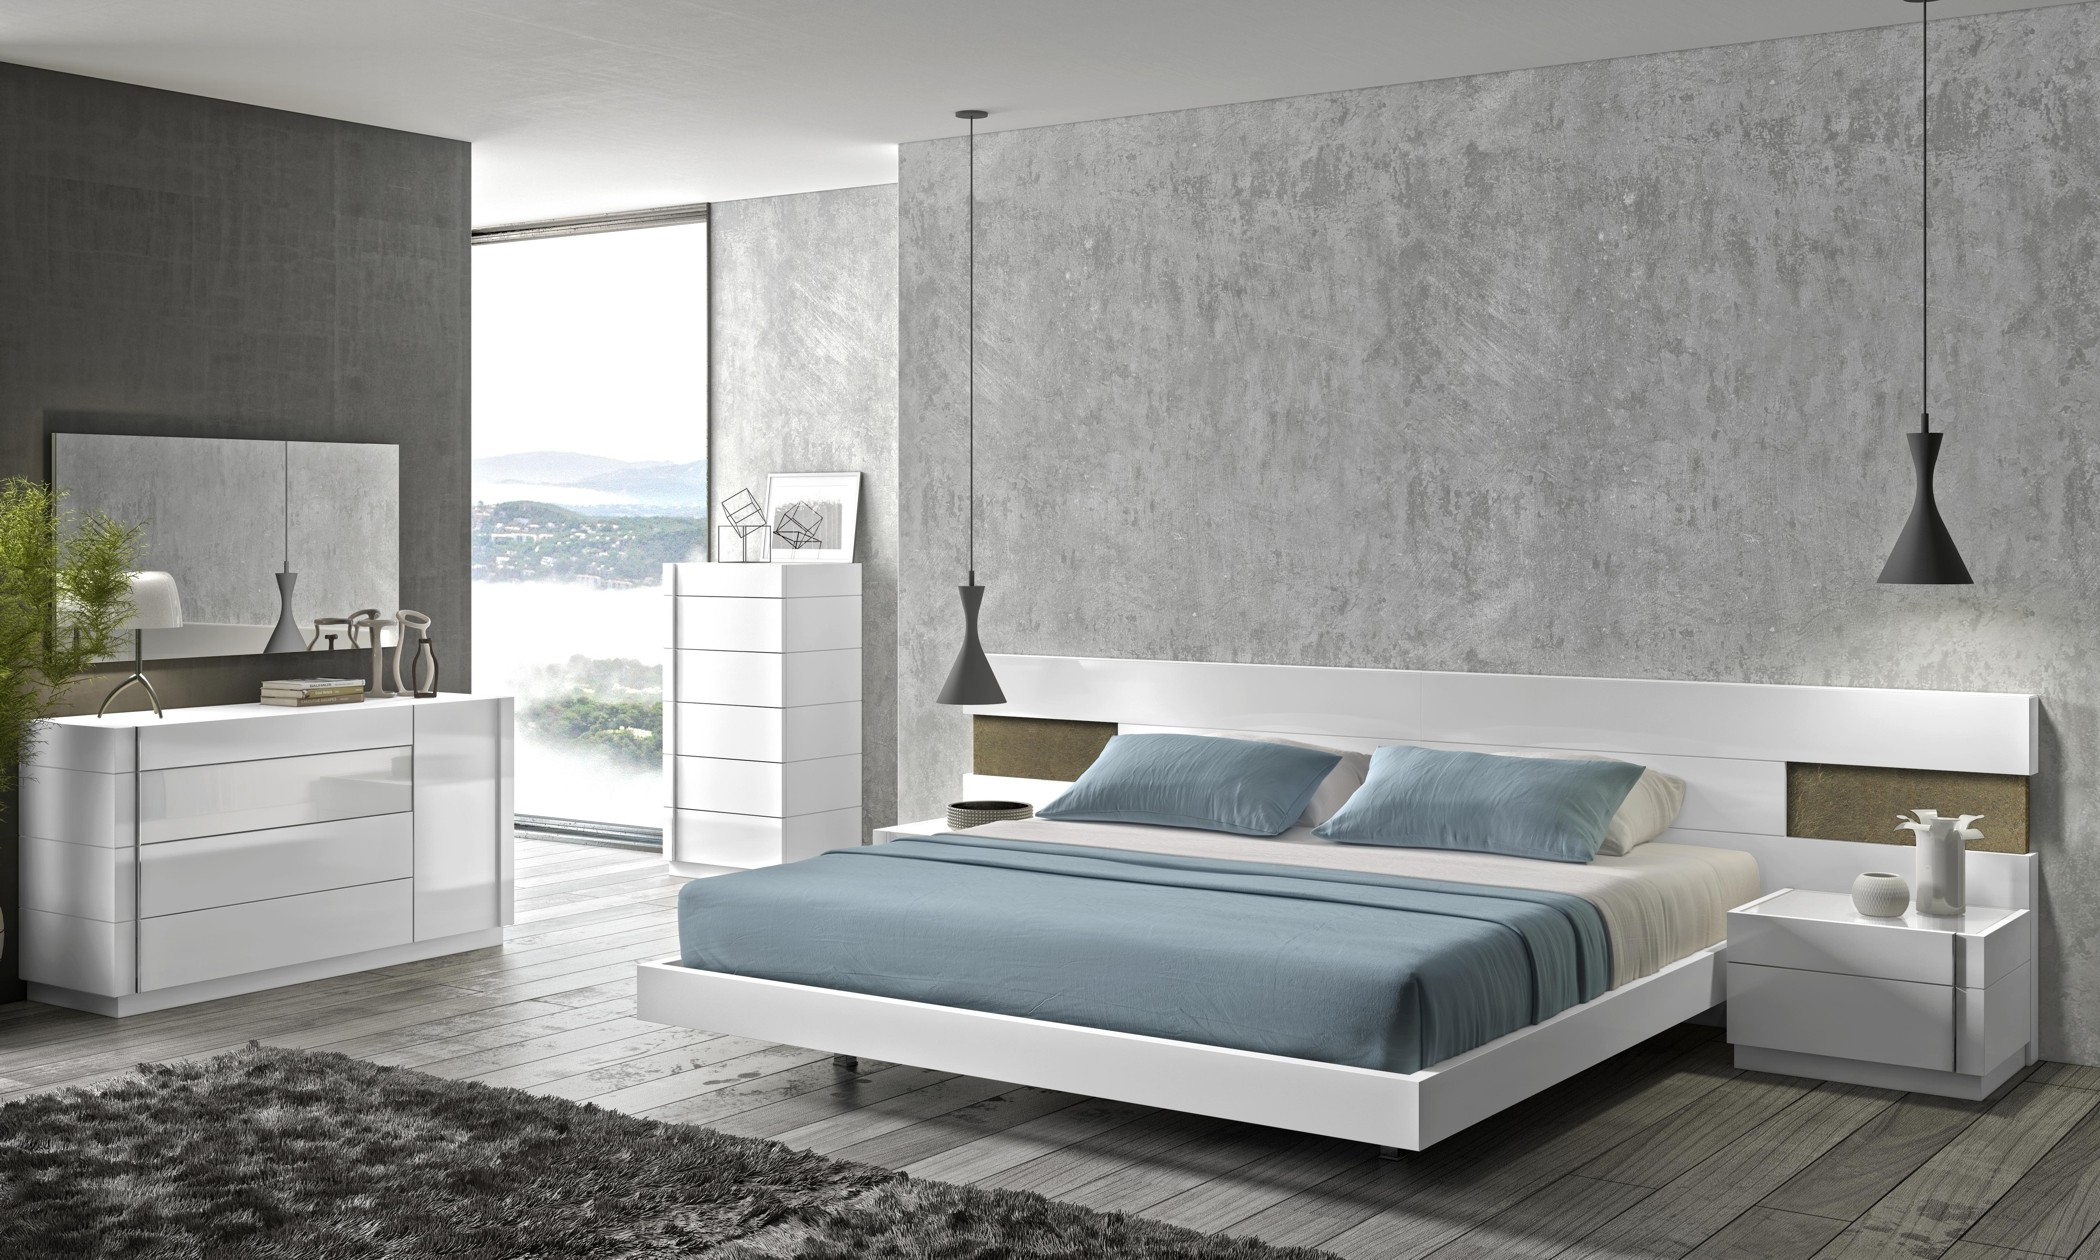 Amora Modern Bedroom Set for 11 Genius Designs of How to Build White Modern Bedroom